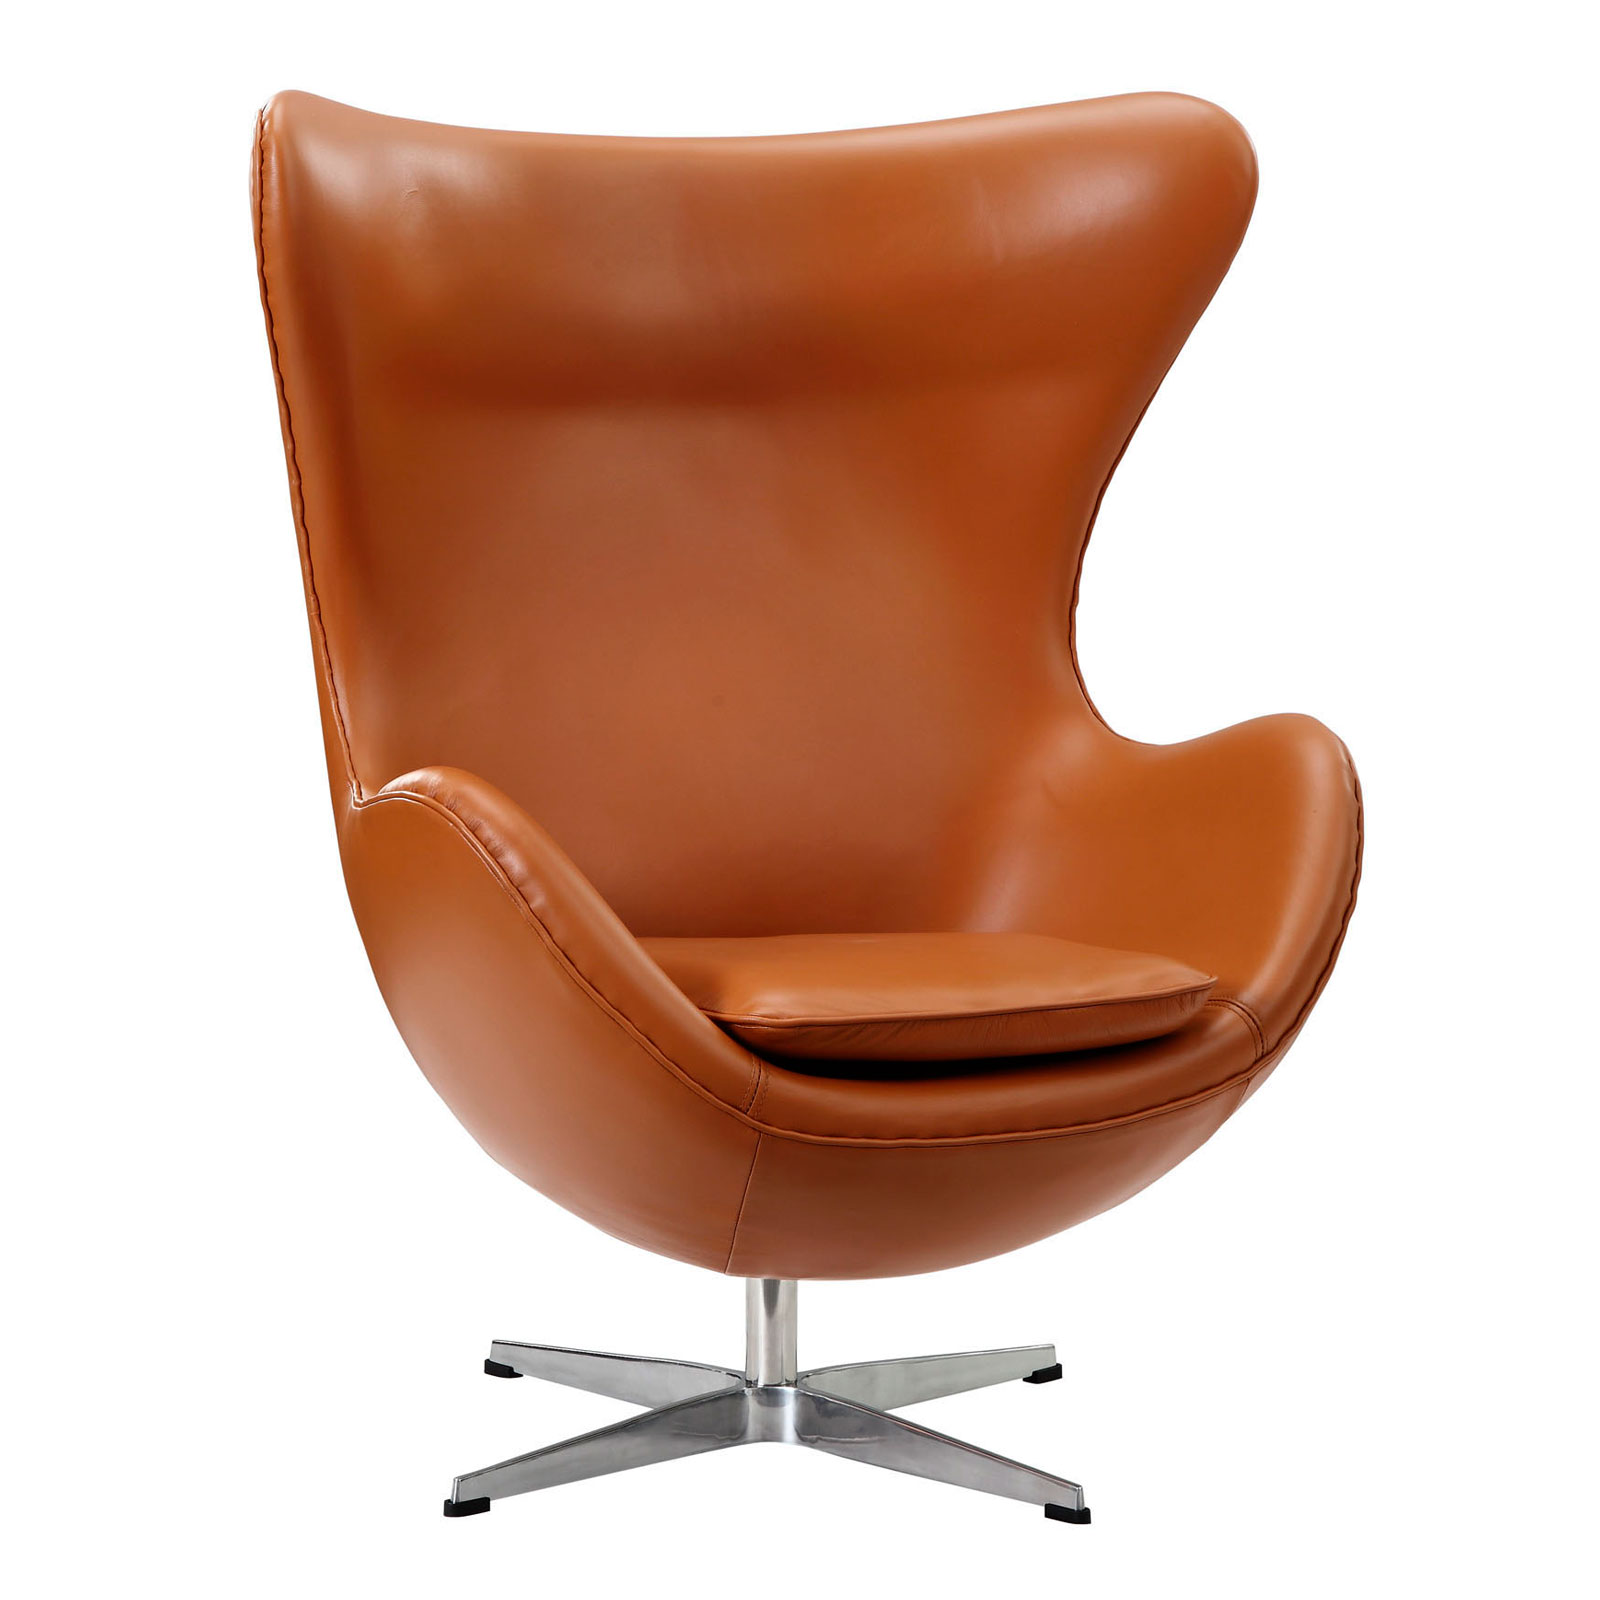 Leather Arne Jacobsen Egg Chair Rentals | Event Furniture Rental | Delivery  | FormDecor